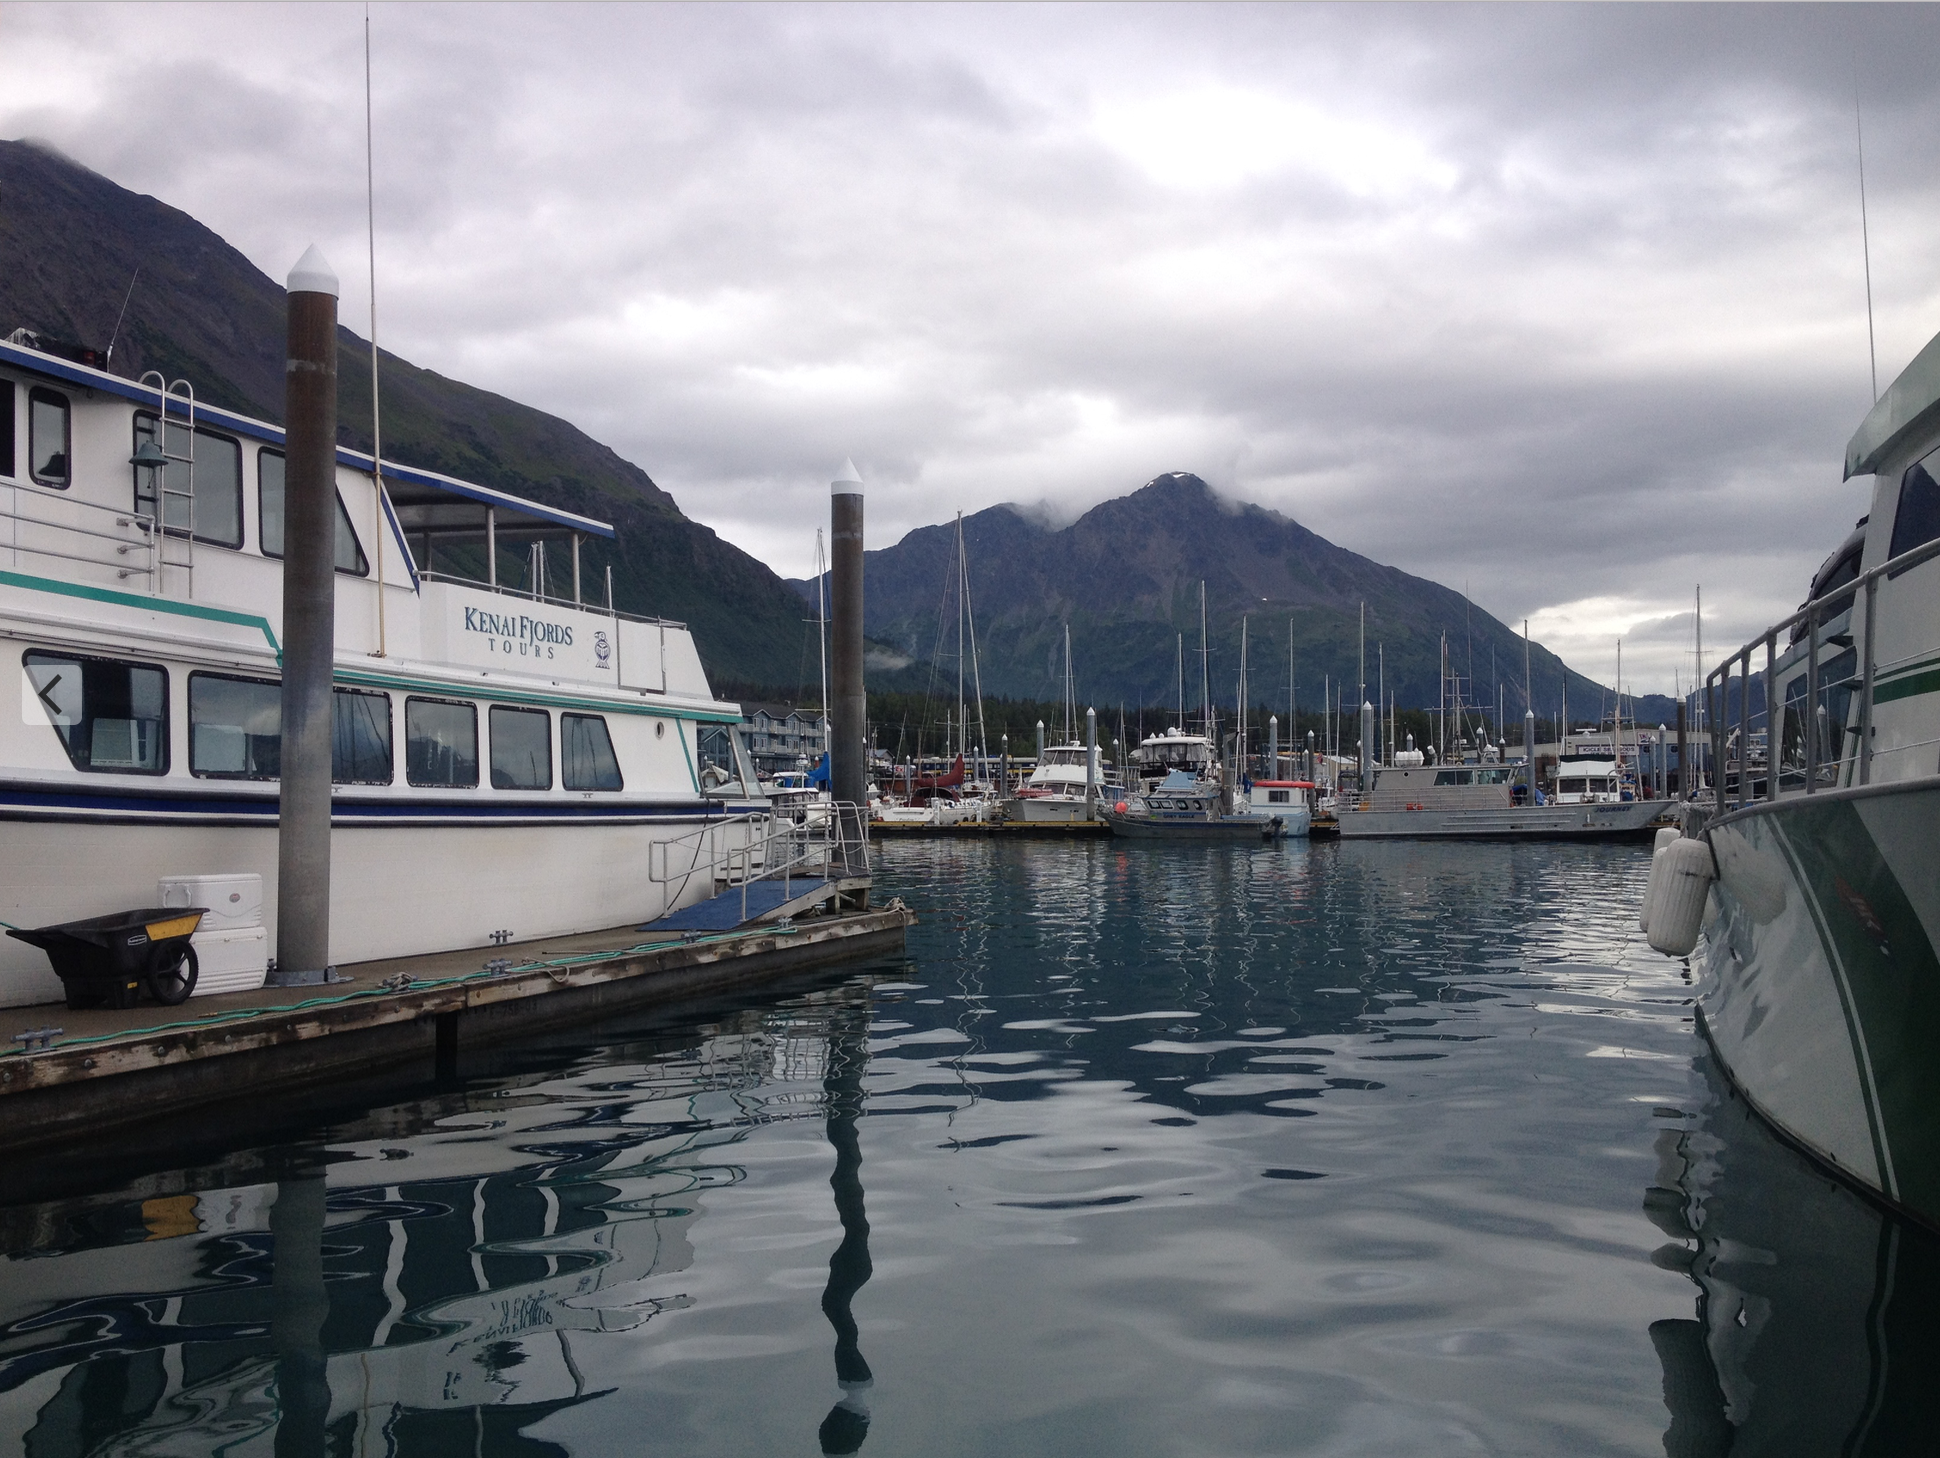 The harbor in Seward, AK. You could spend the afternoon walking the docks, talking to fishermen and travelers alike.